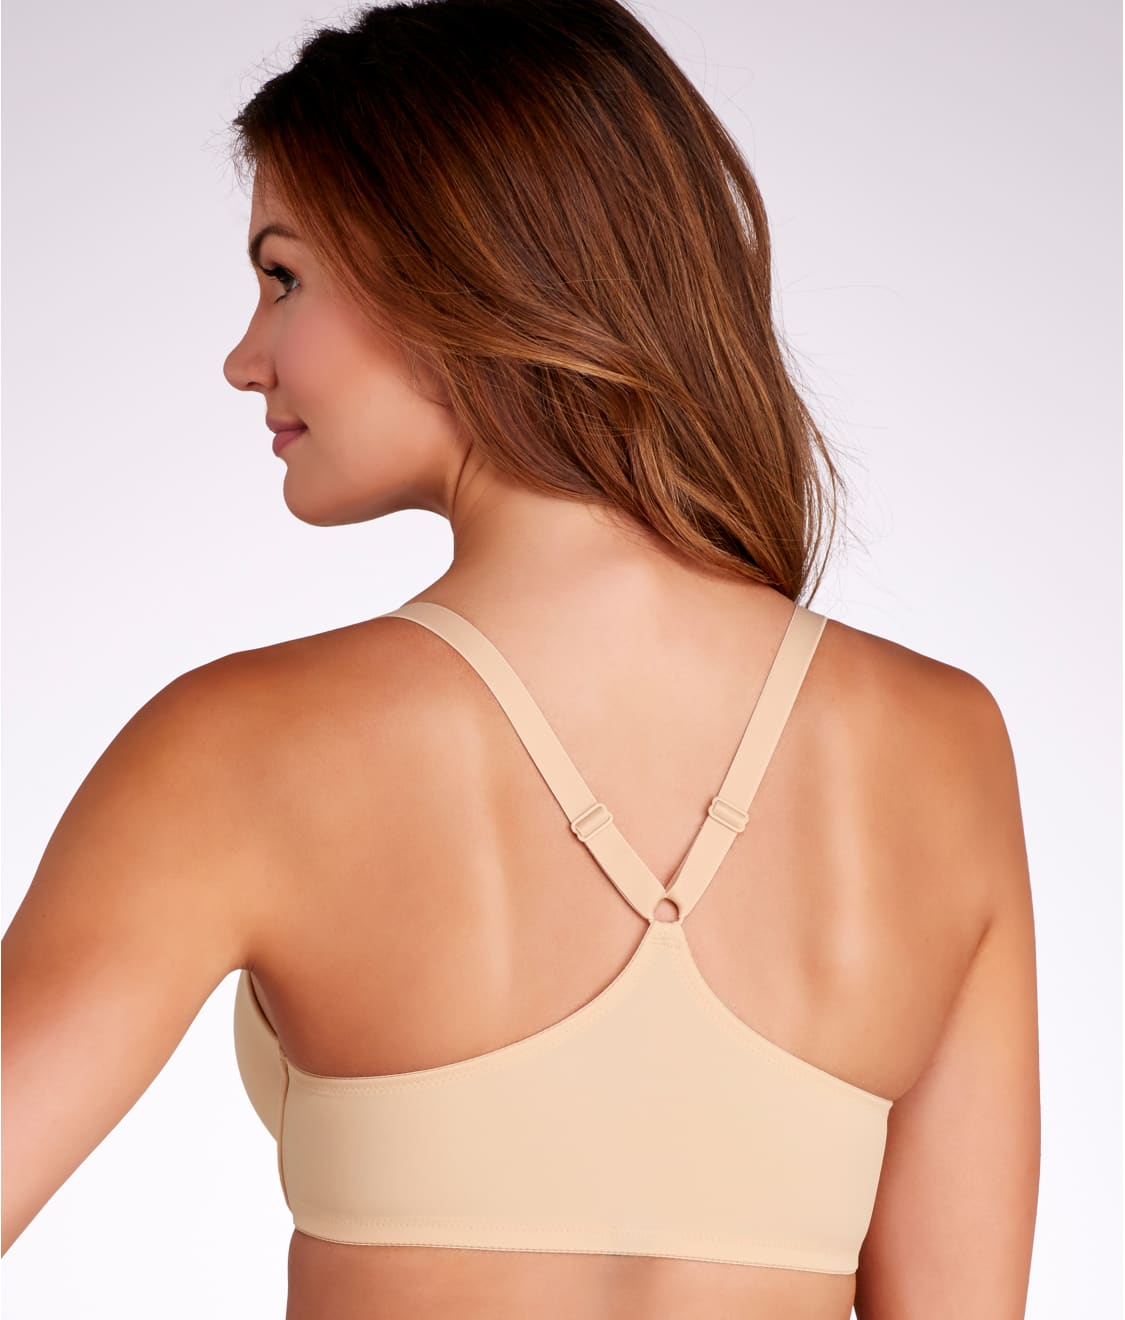 b89972aab0 Dominique Talia Front-Close T-Shirt Bra